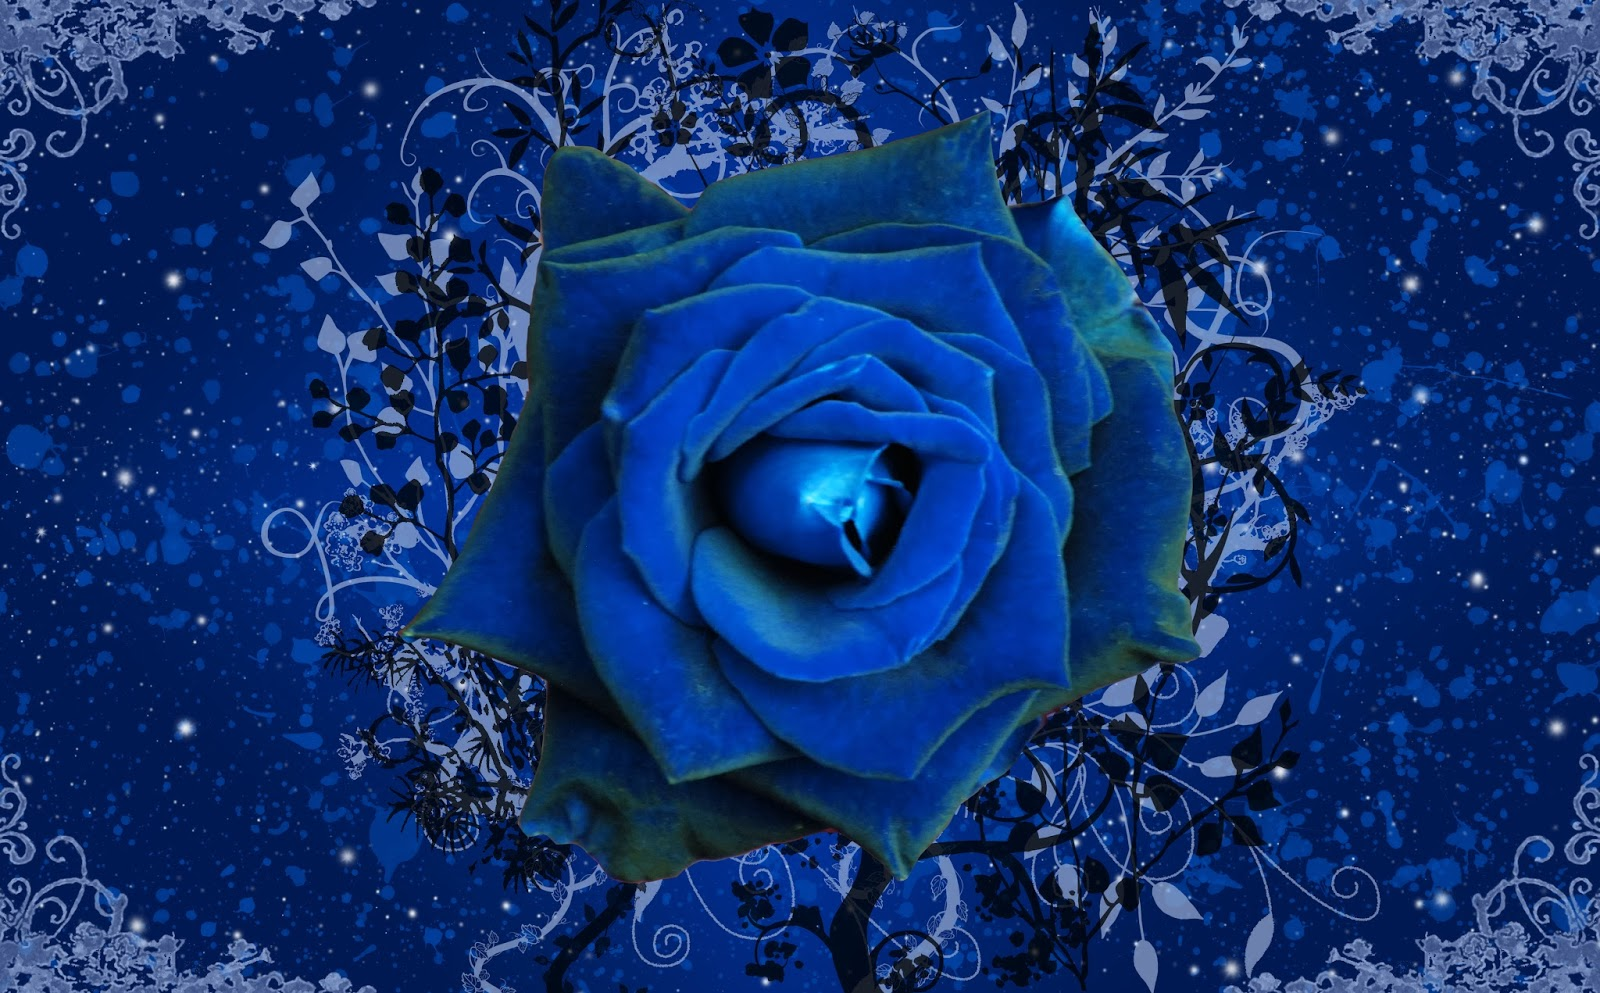 Blue Roses Wallpapers Puspa Wallpapers